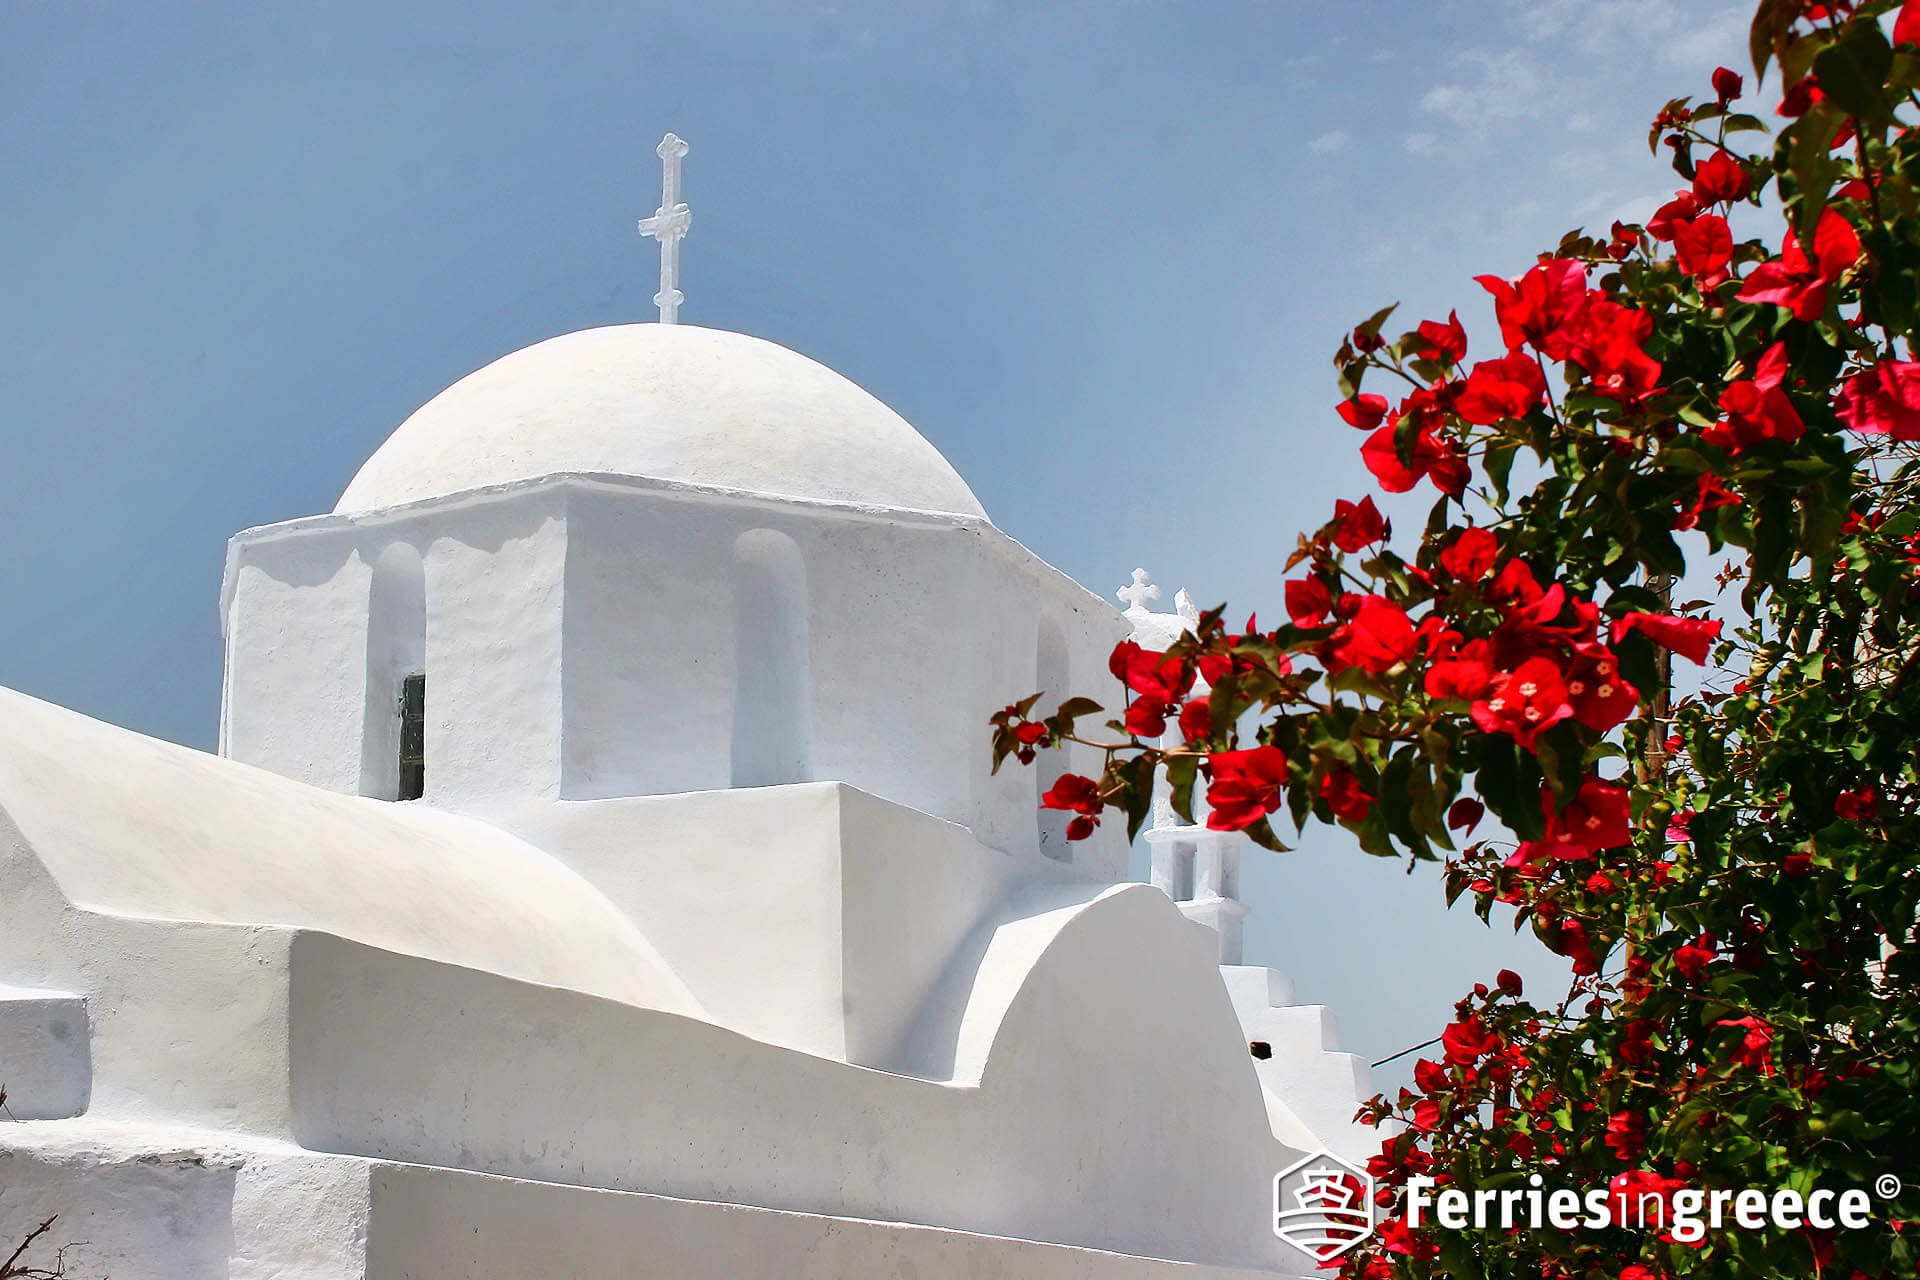 Typical Amorgos scene. Photo courtesy of Ferries In Greece.